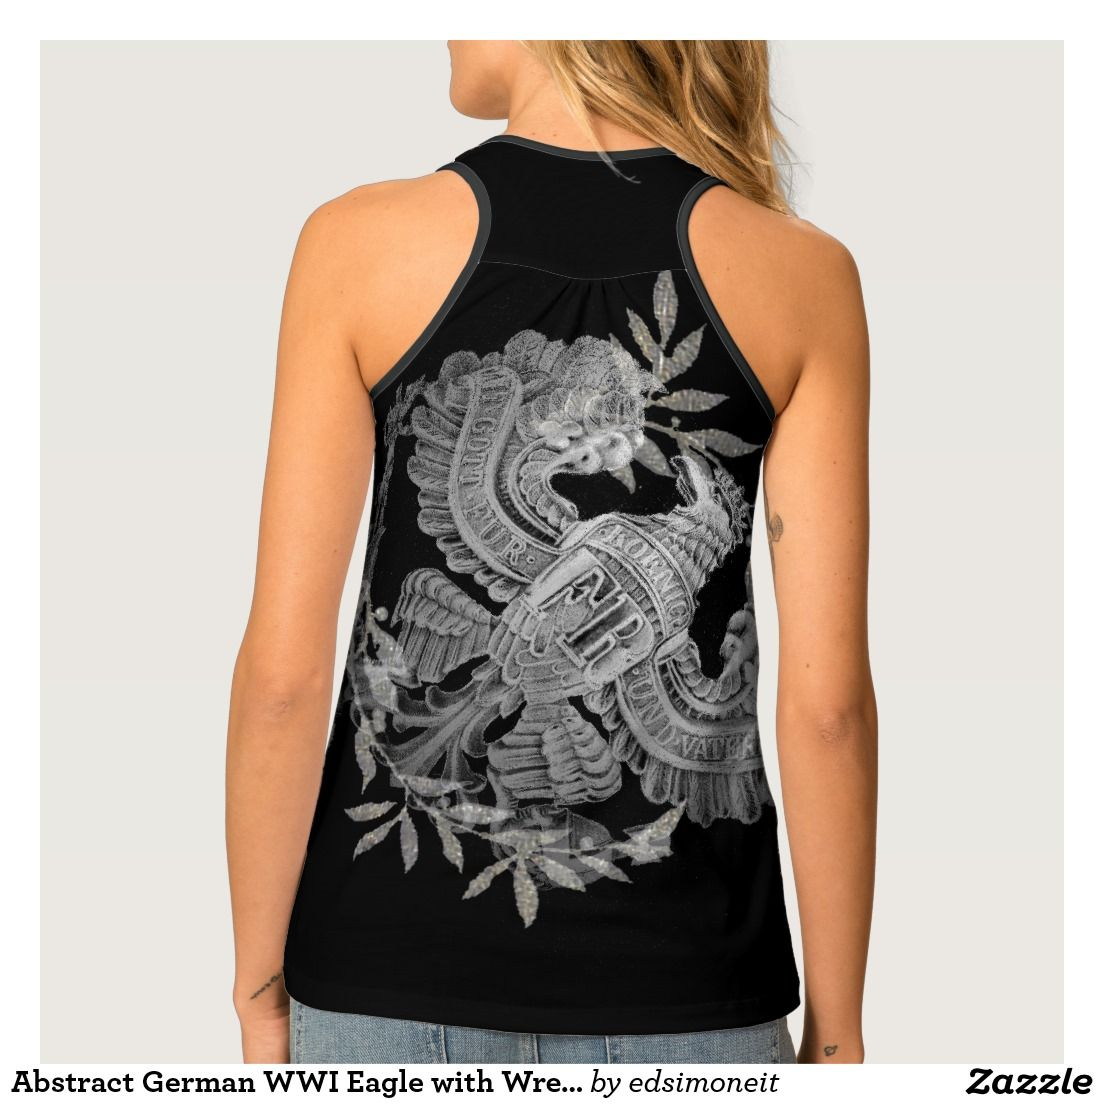 Abstract German WWI Eagle with Wreath Tank Top